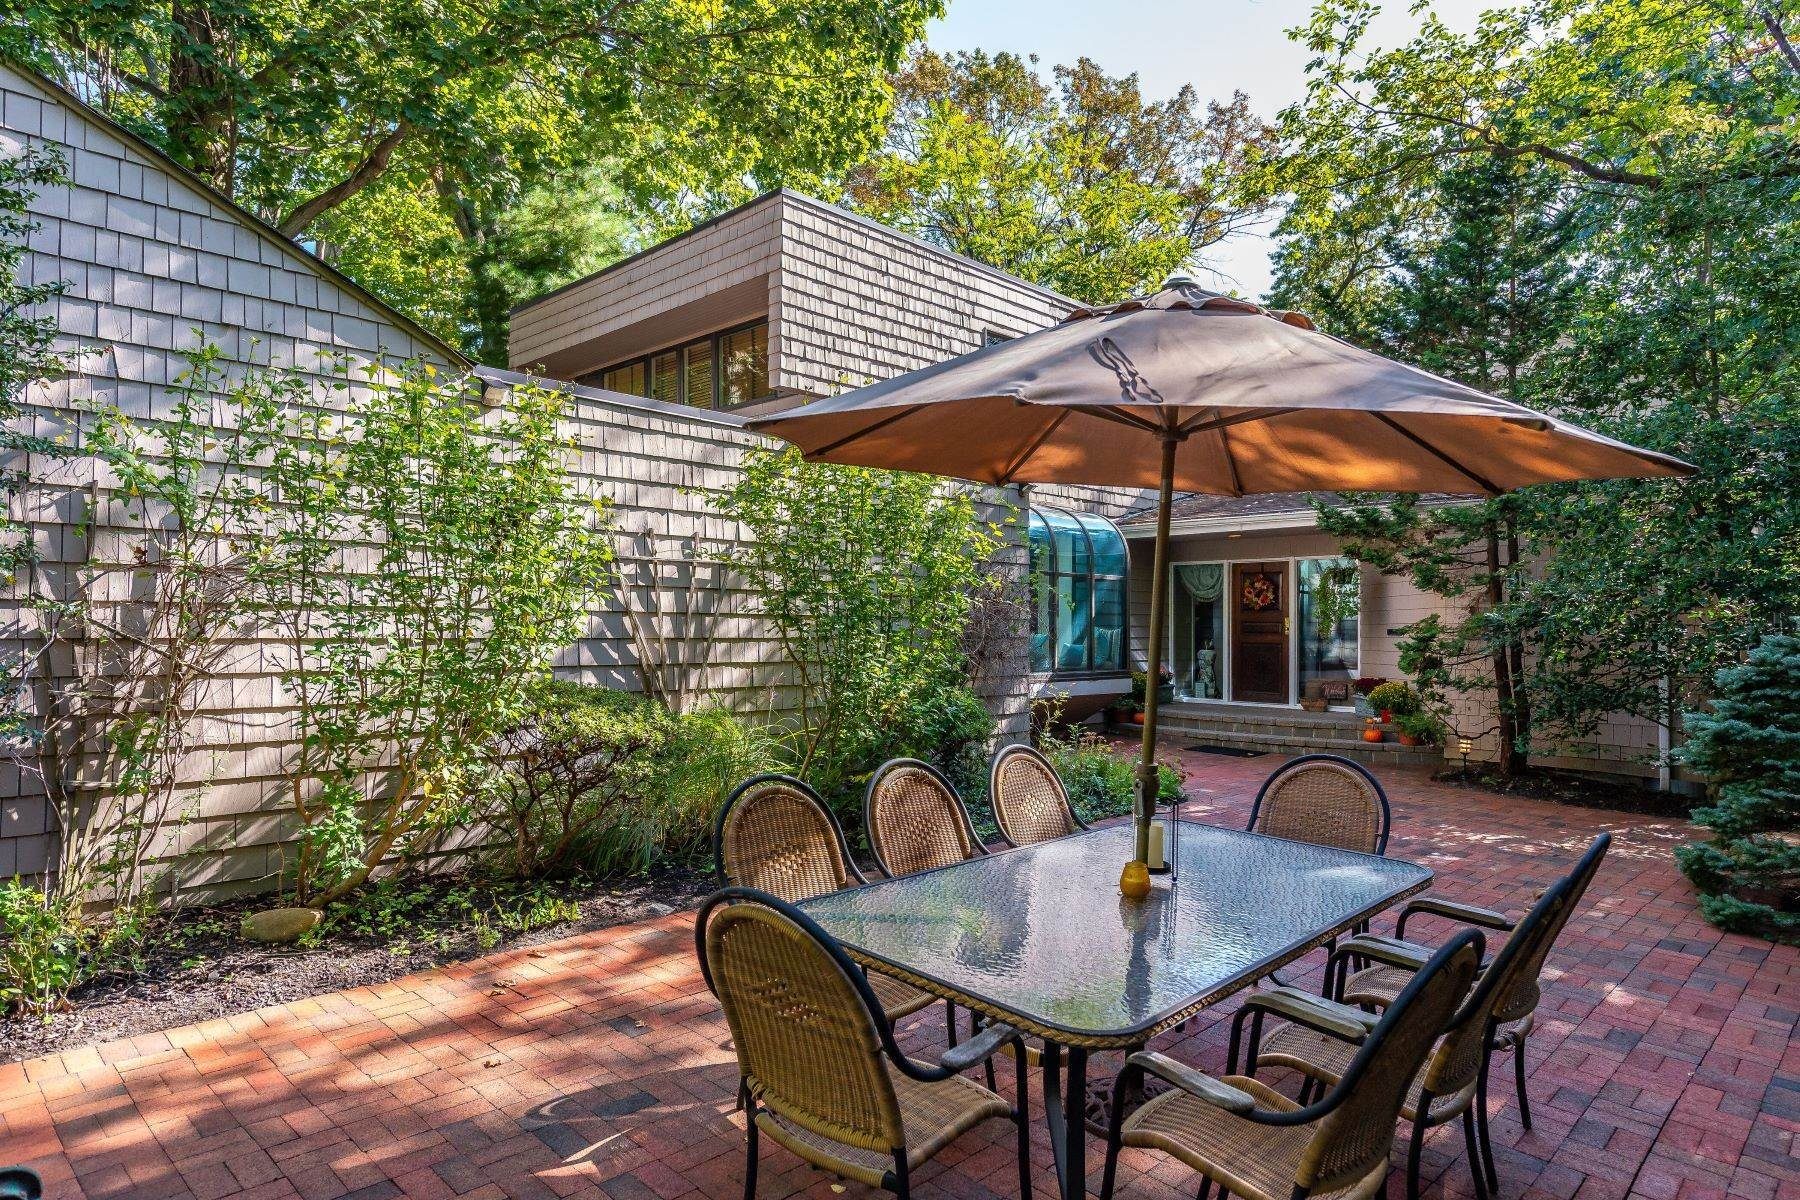 Single Family Homes for Sale at 4 Woodland Place, Port Washington, Ny, 11050 4 Woodland Place Port Washington, New York 11050 United States